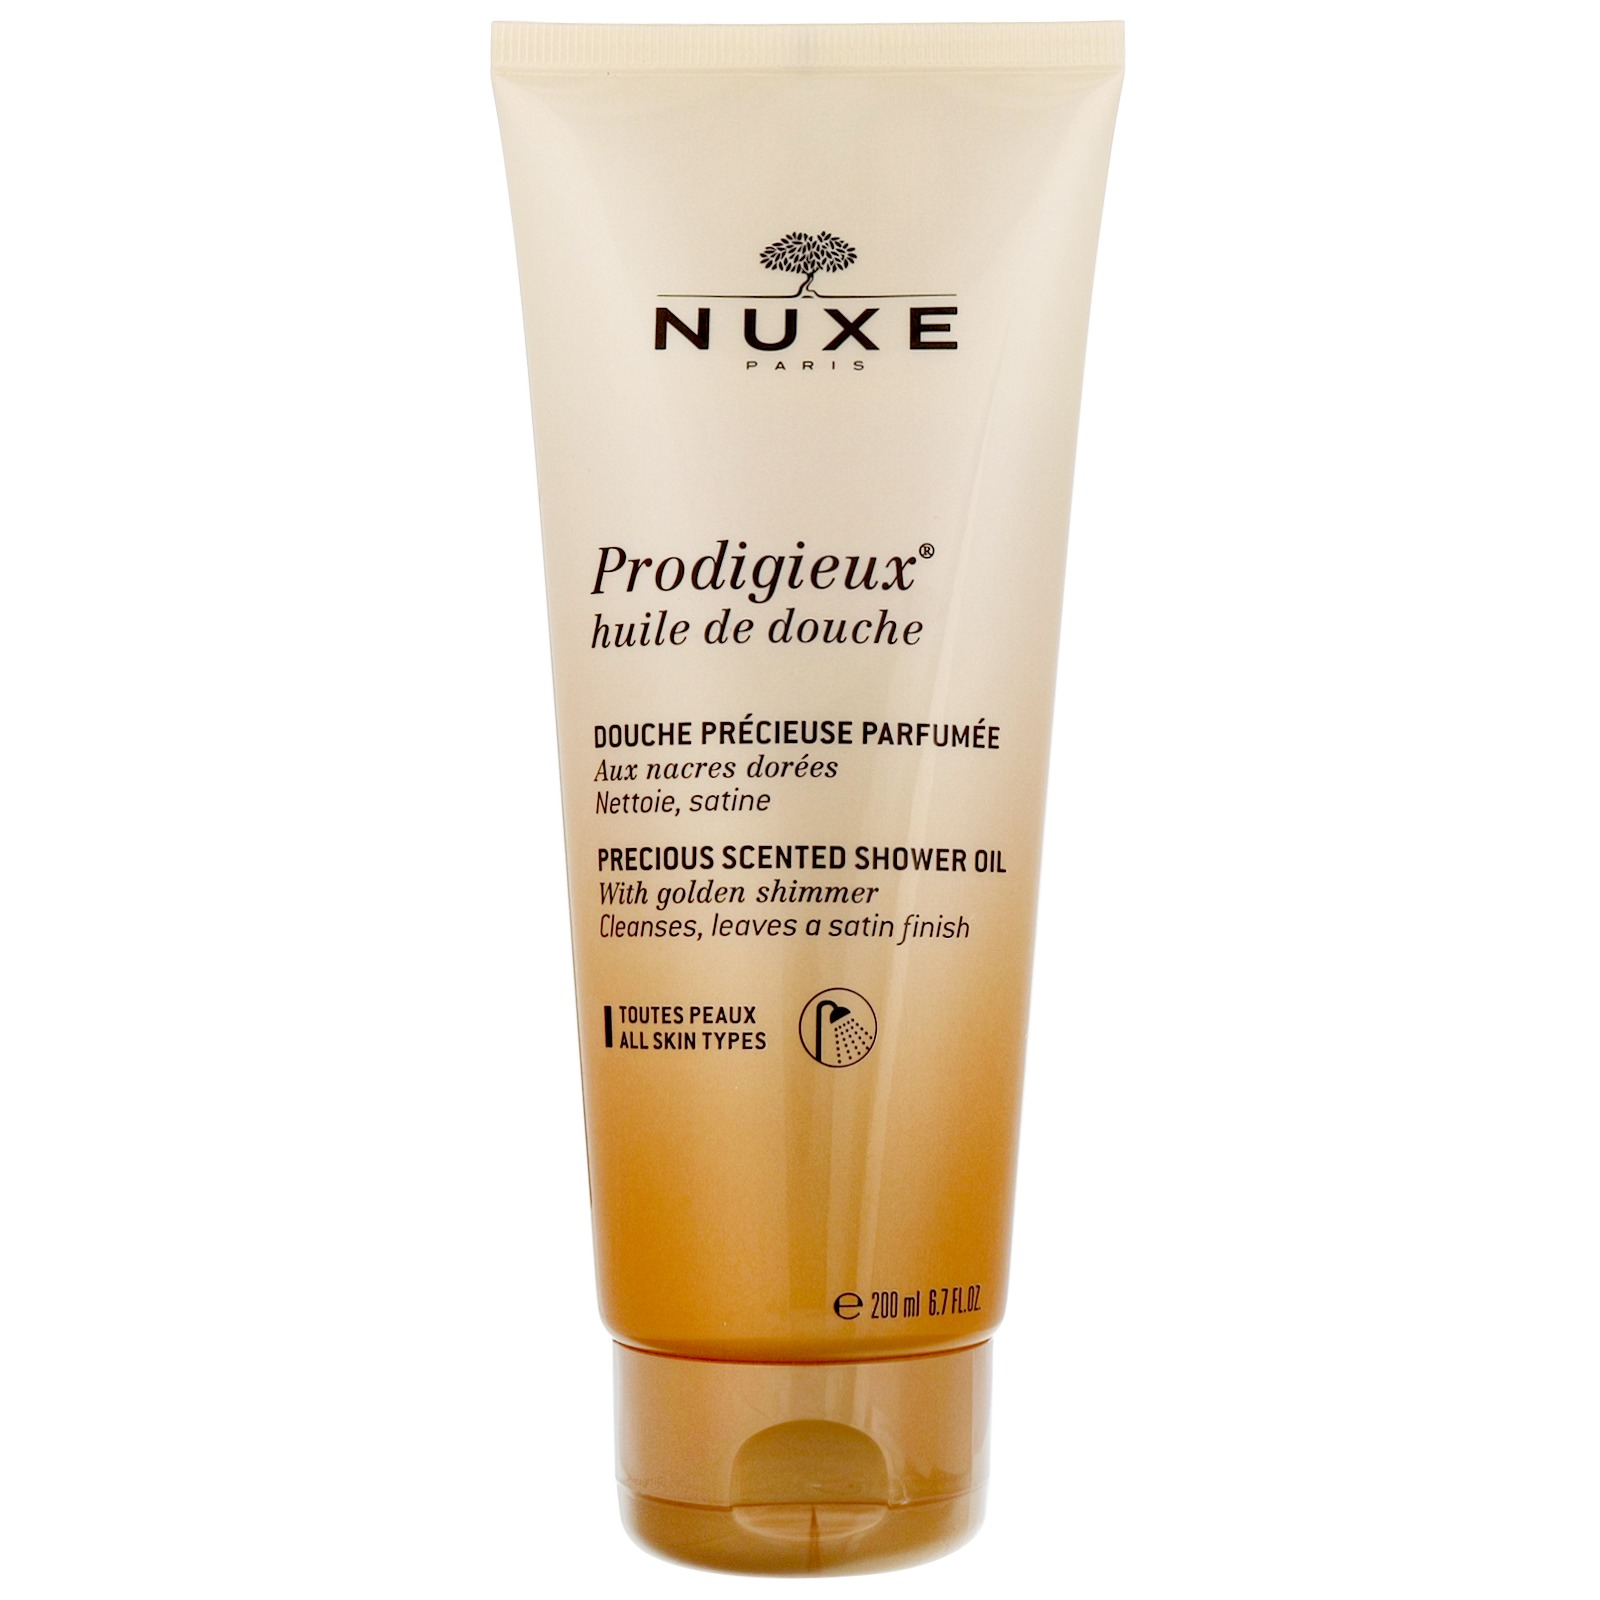 Nuxe Prodigieux Precious Scented Shower Oil With Golden Shimmer 200ml